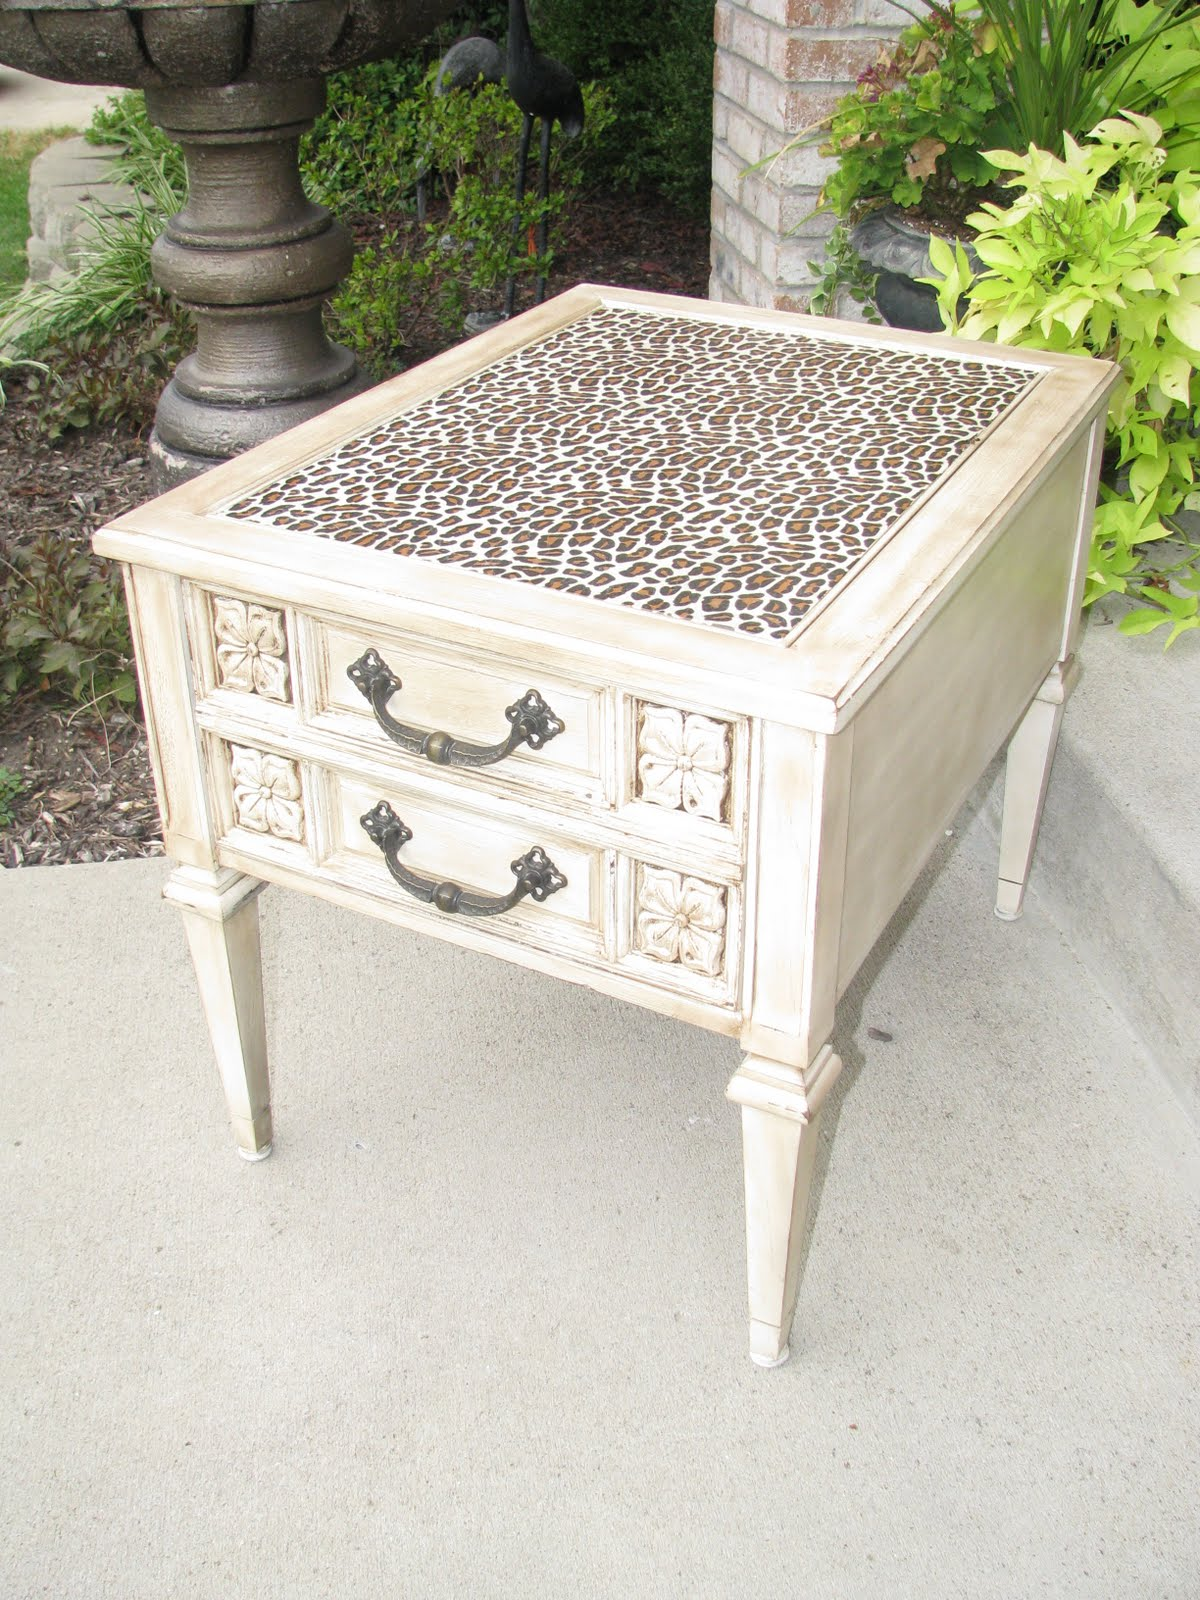 My Cheetah Table Was In A Silent Auction!